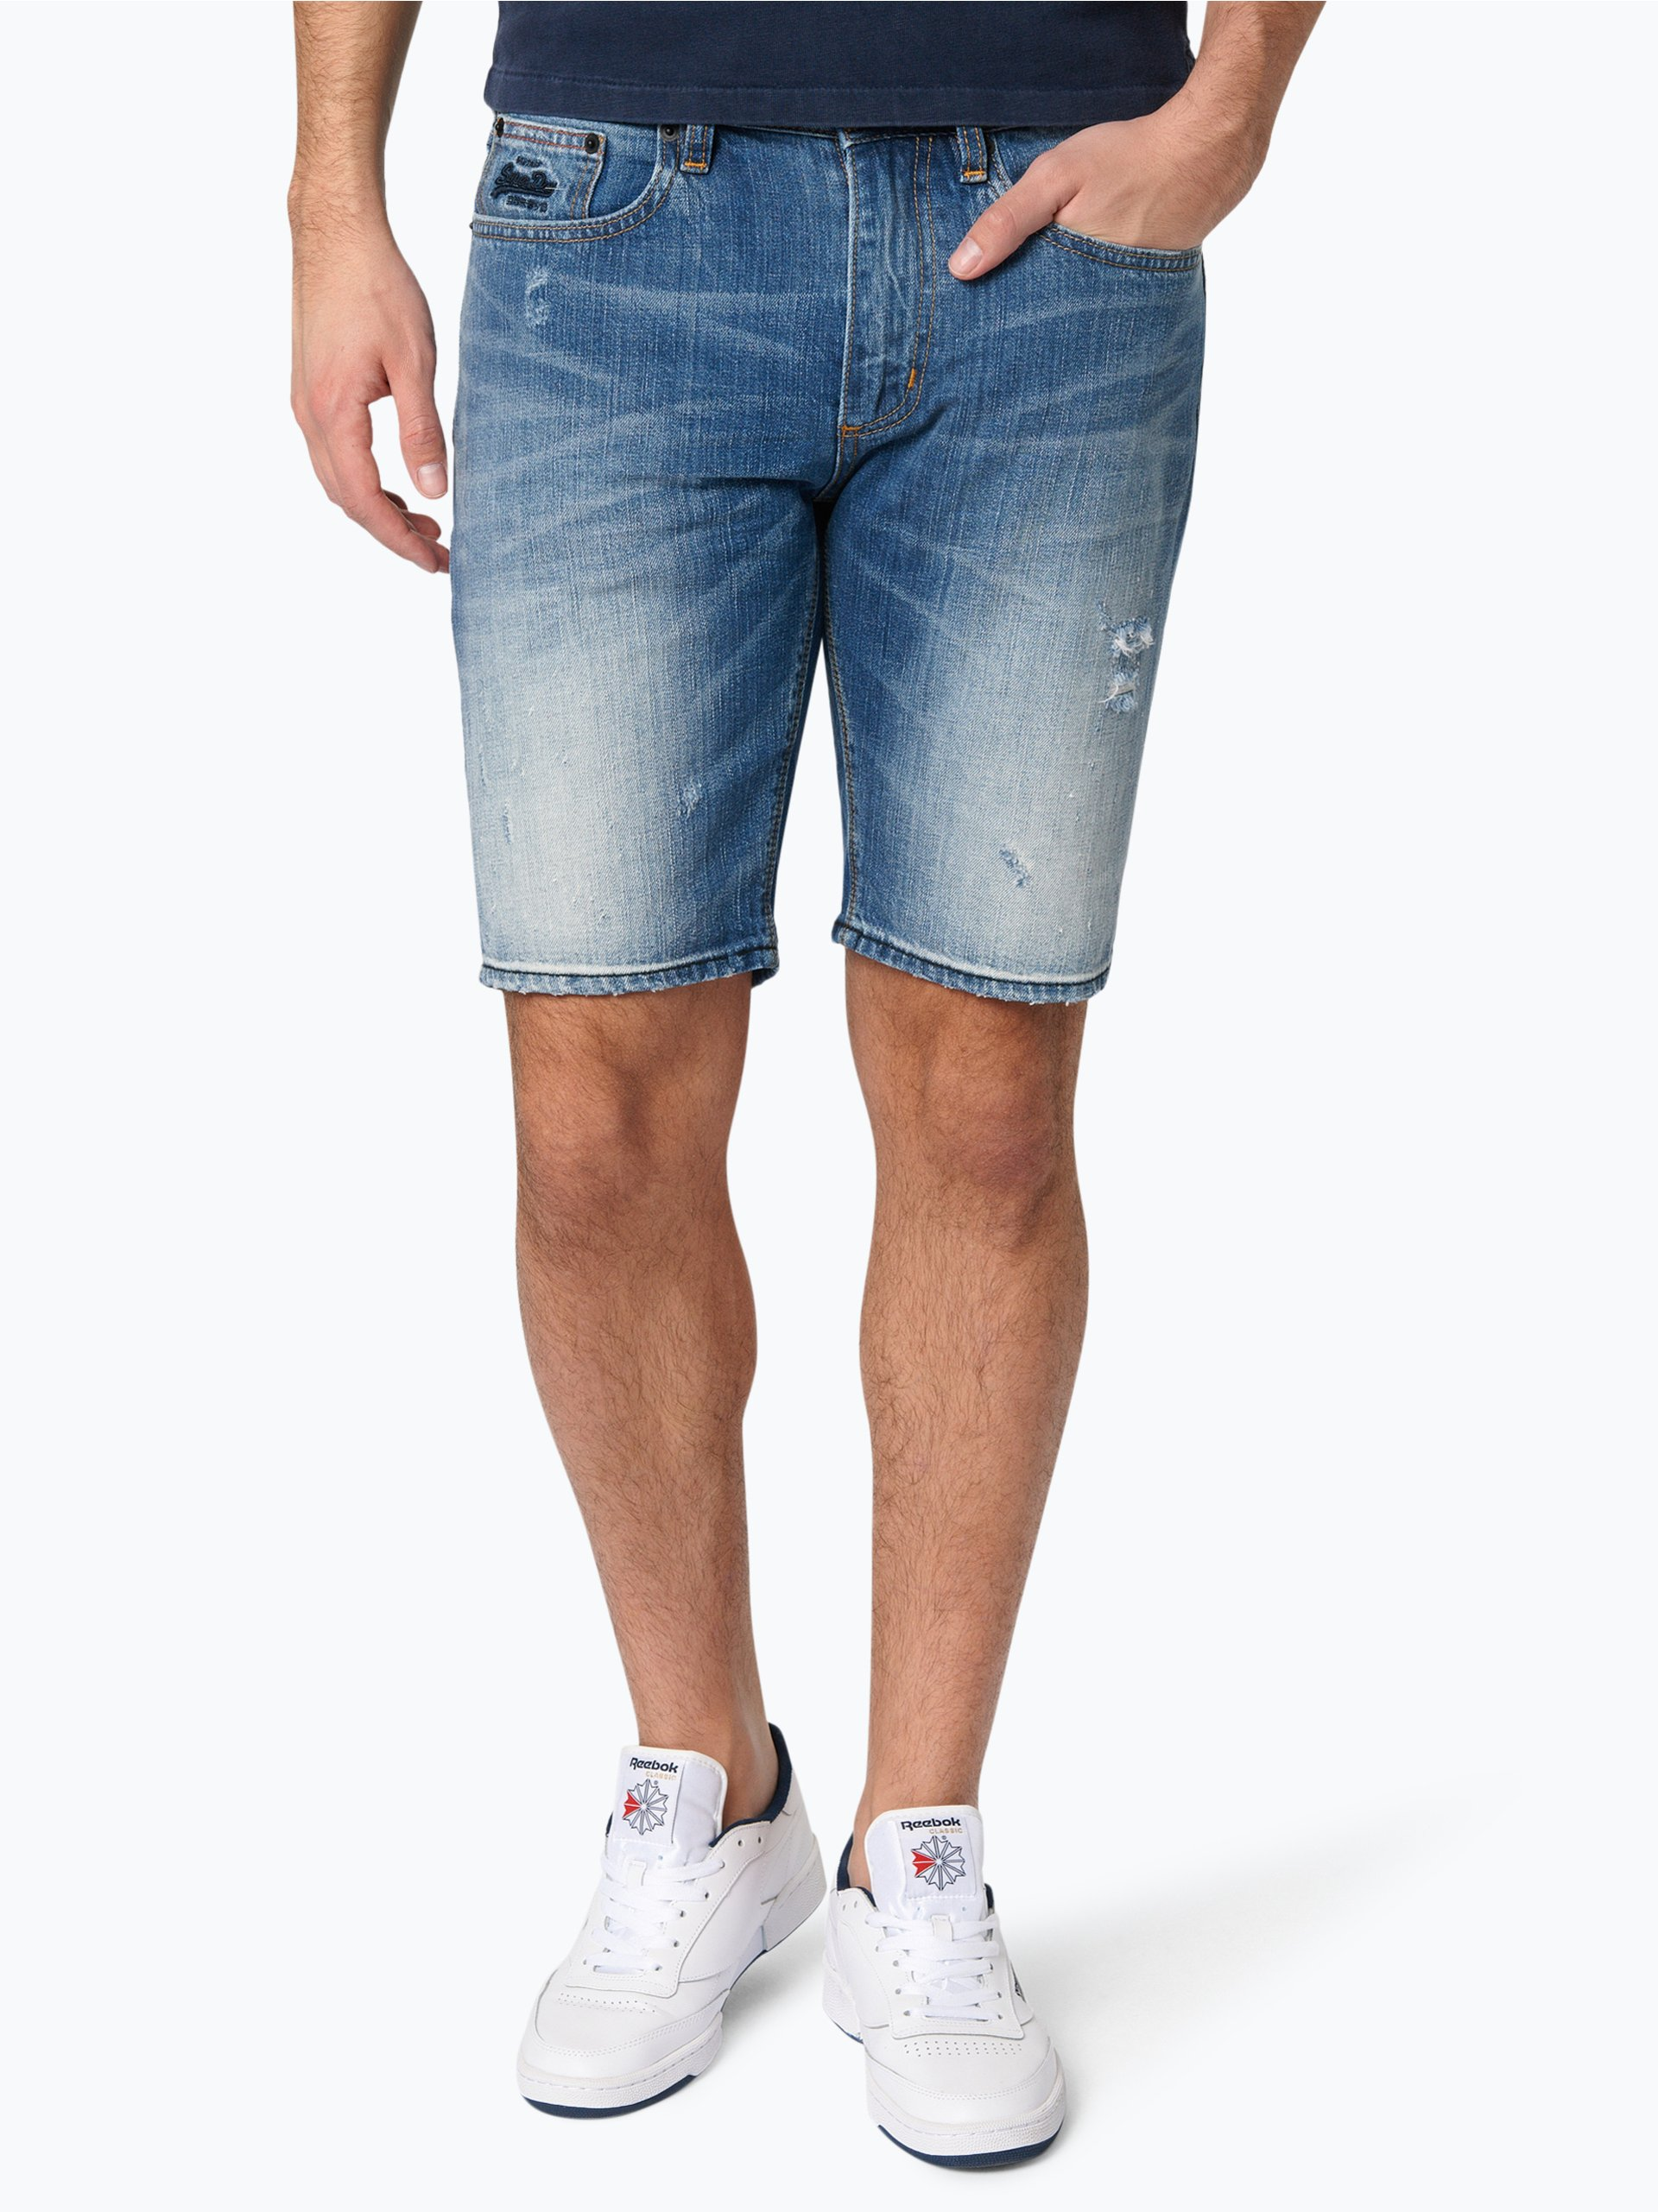 superdry herren jeans shorts officer online kaufen vangraaf com. Black Bedroom Furniture Sets. Home Design Ideas